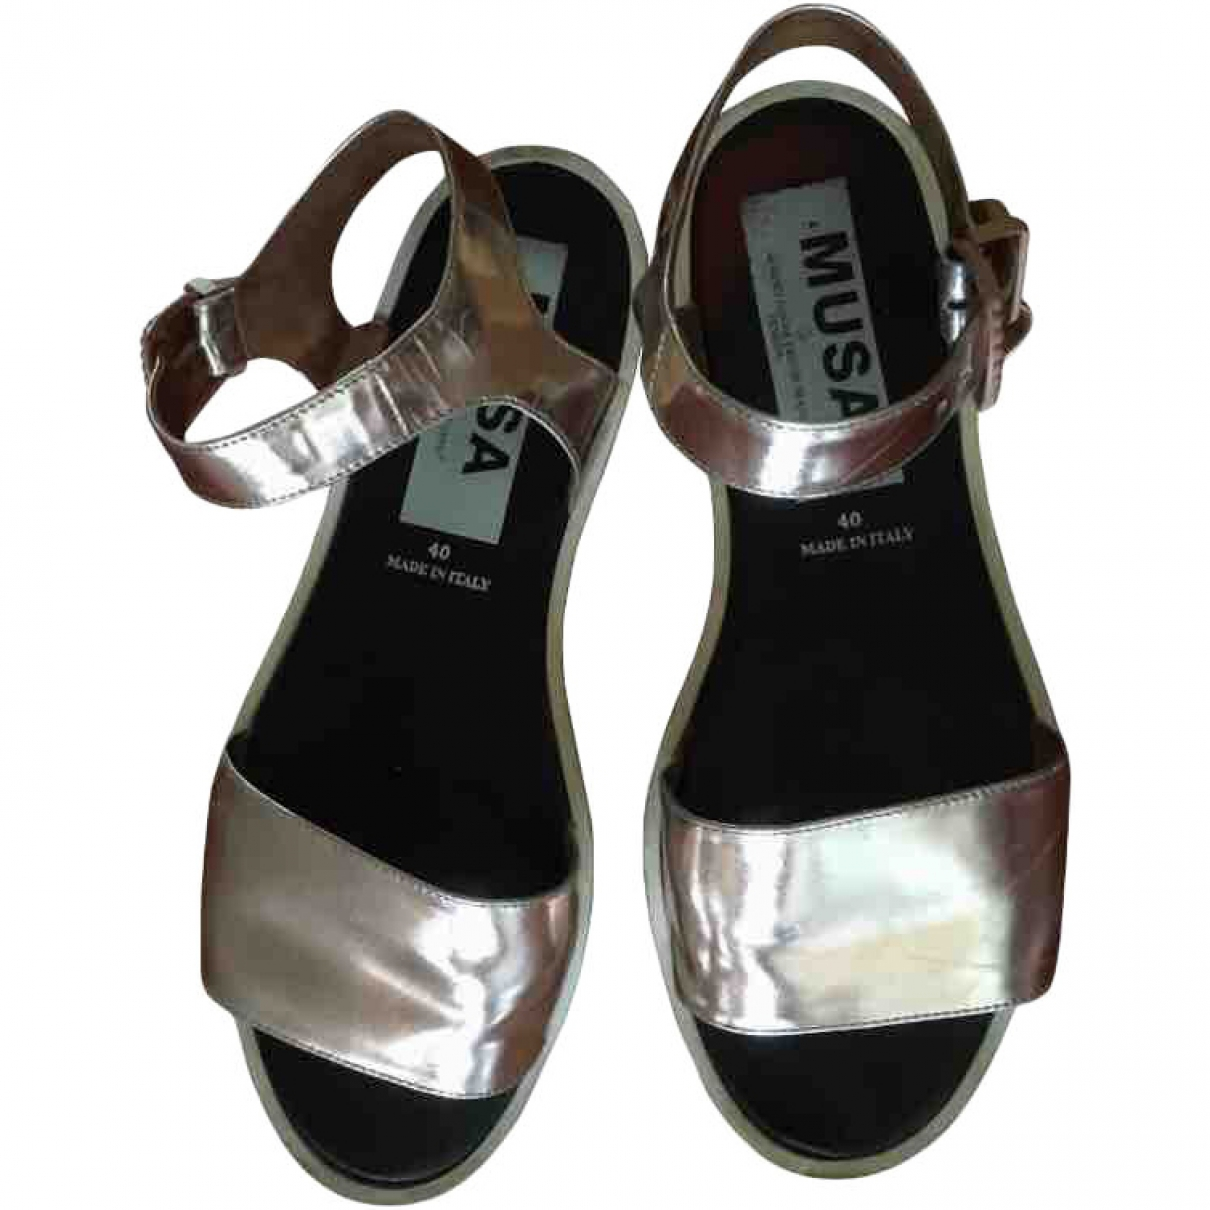 Musa \N Silver Patent leather Sandals for Women 40 EU